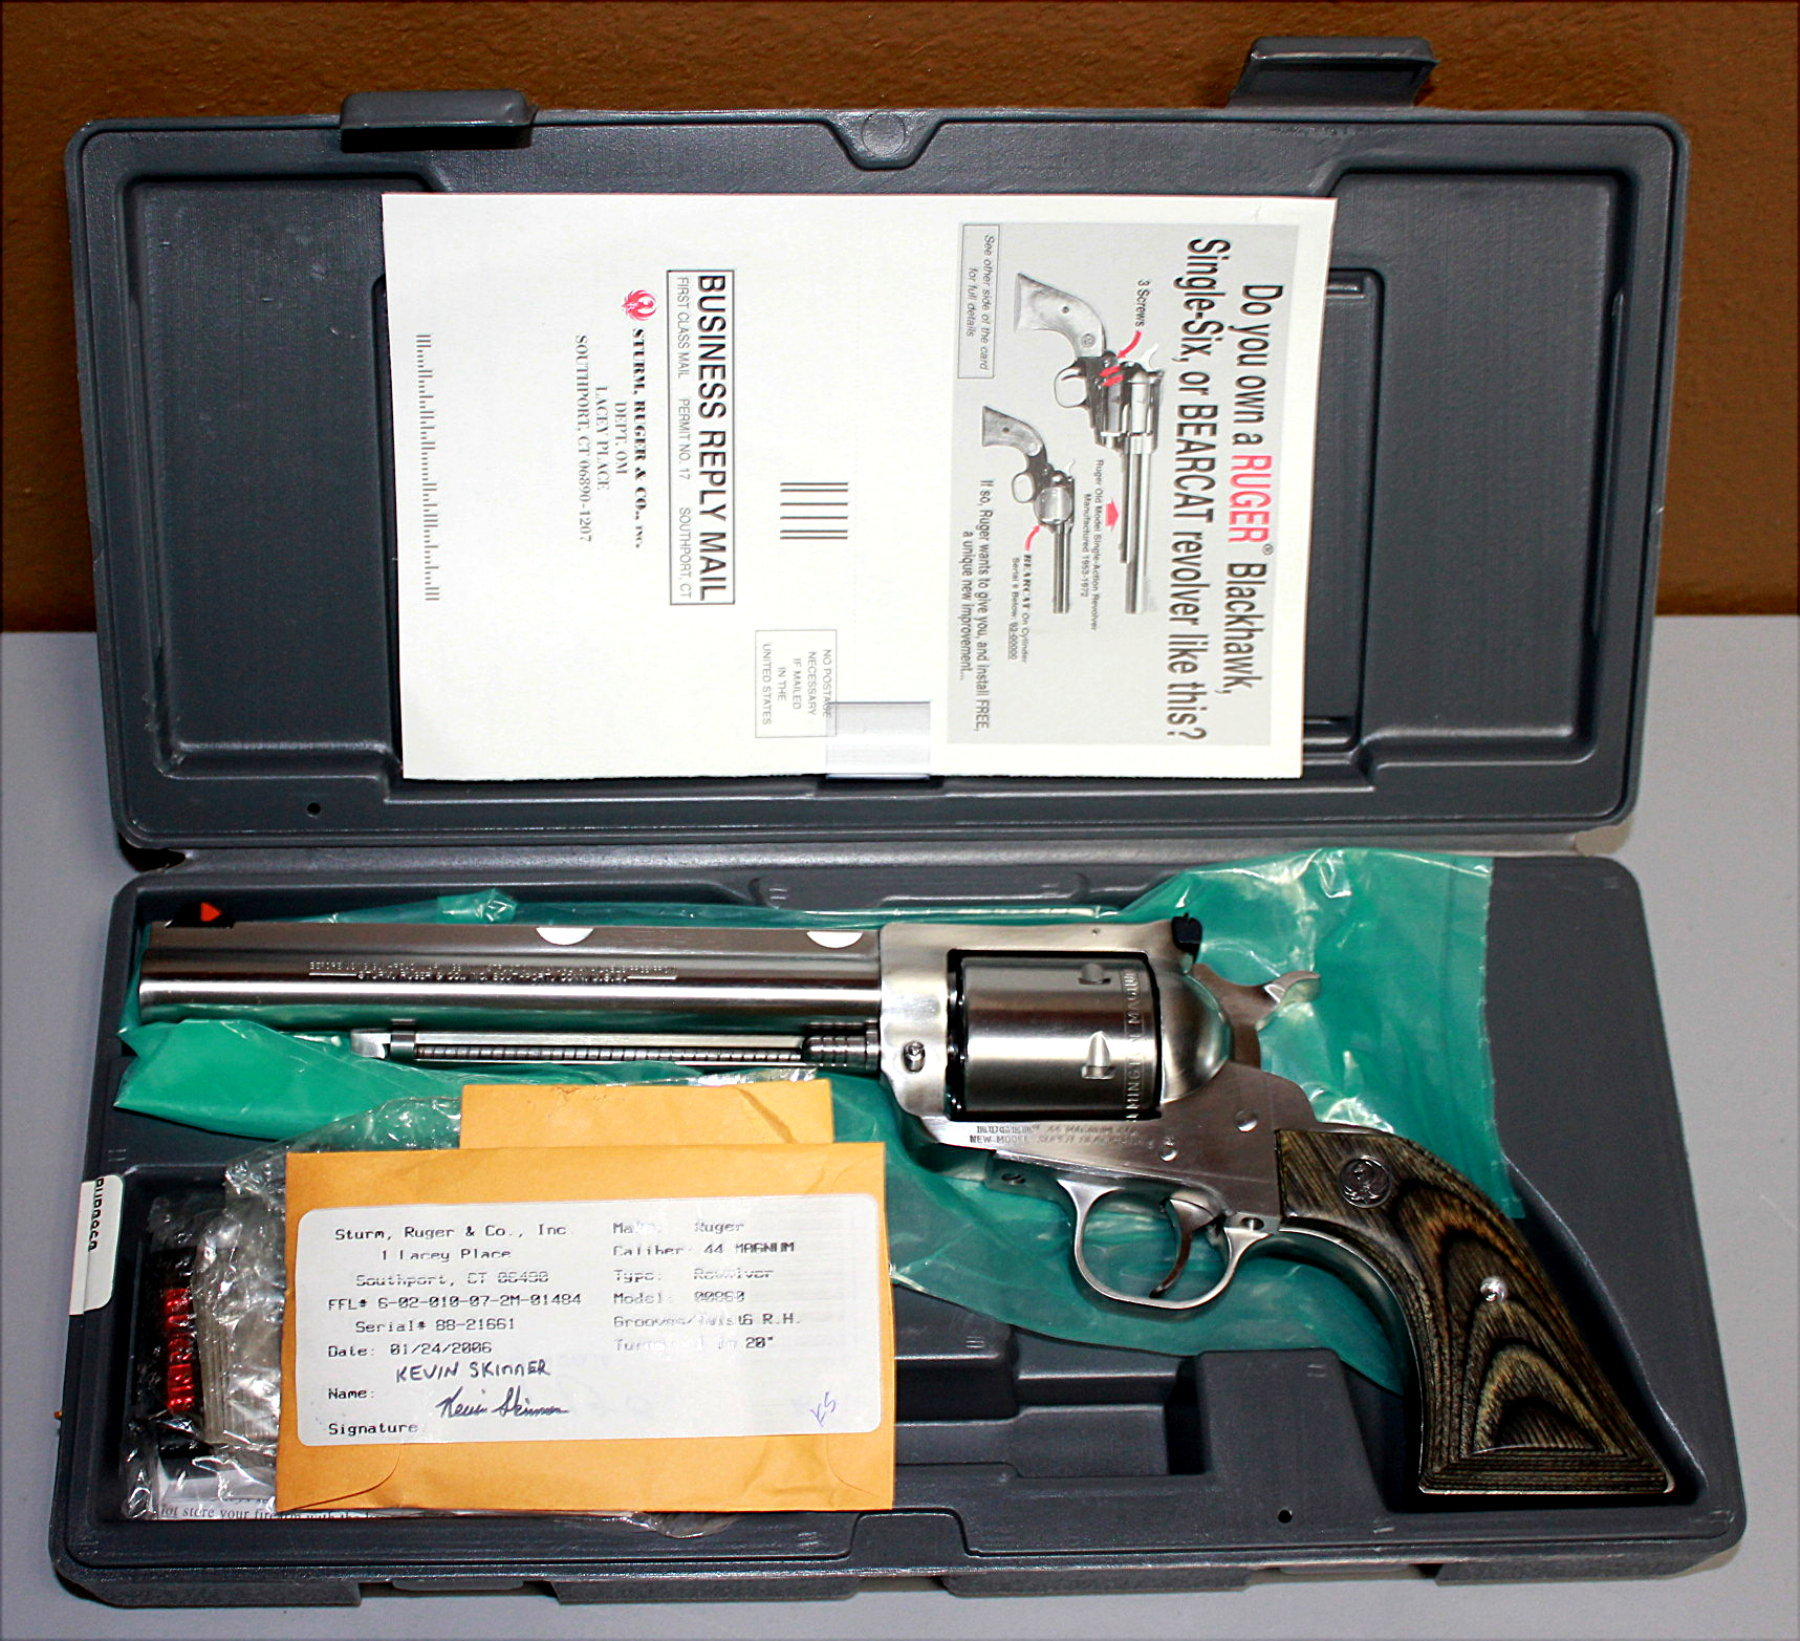 RUGER SUPER BLACKHAWK HUNTER 44 MAGNUM REVOLVER - VERY NICE!